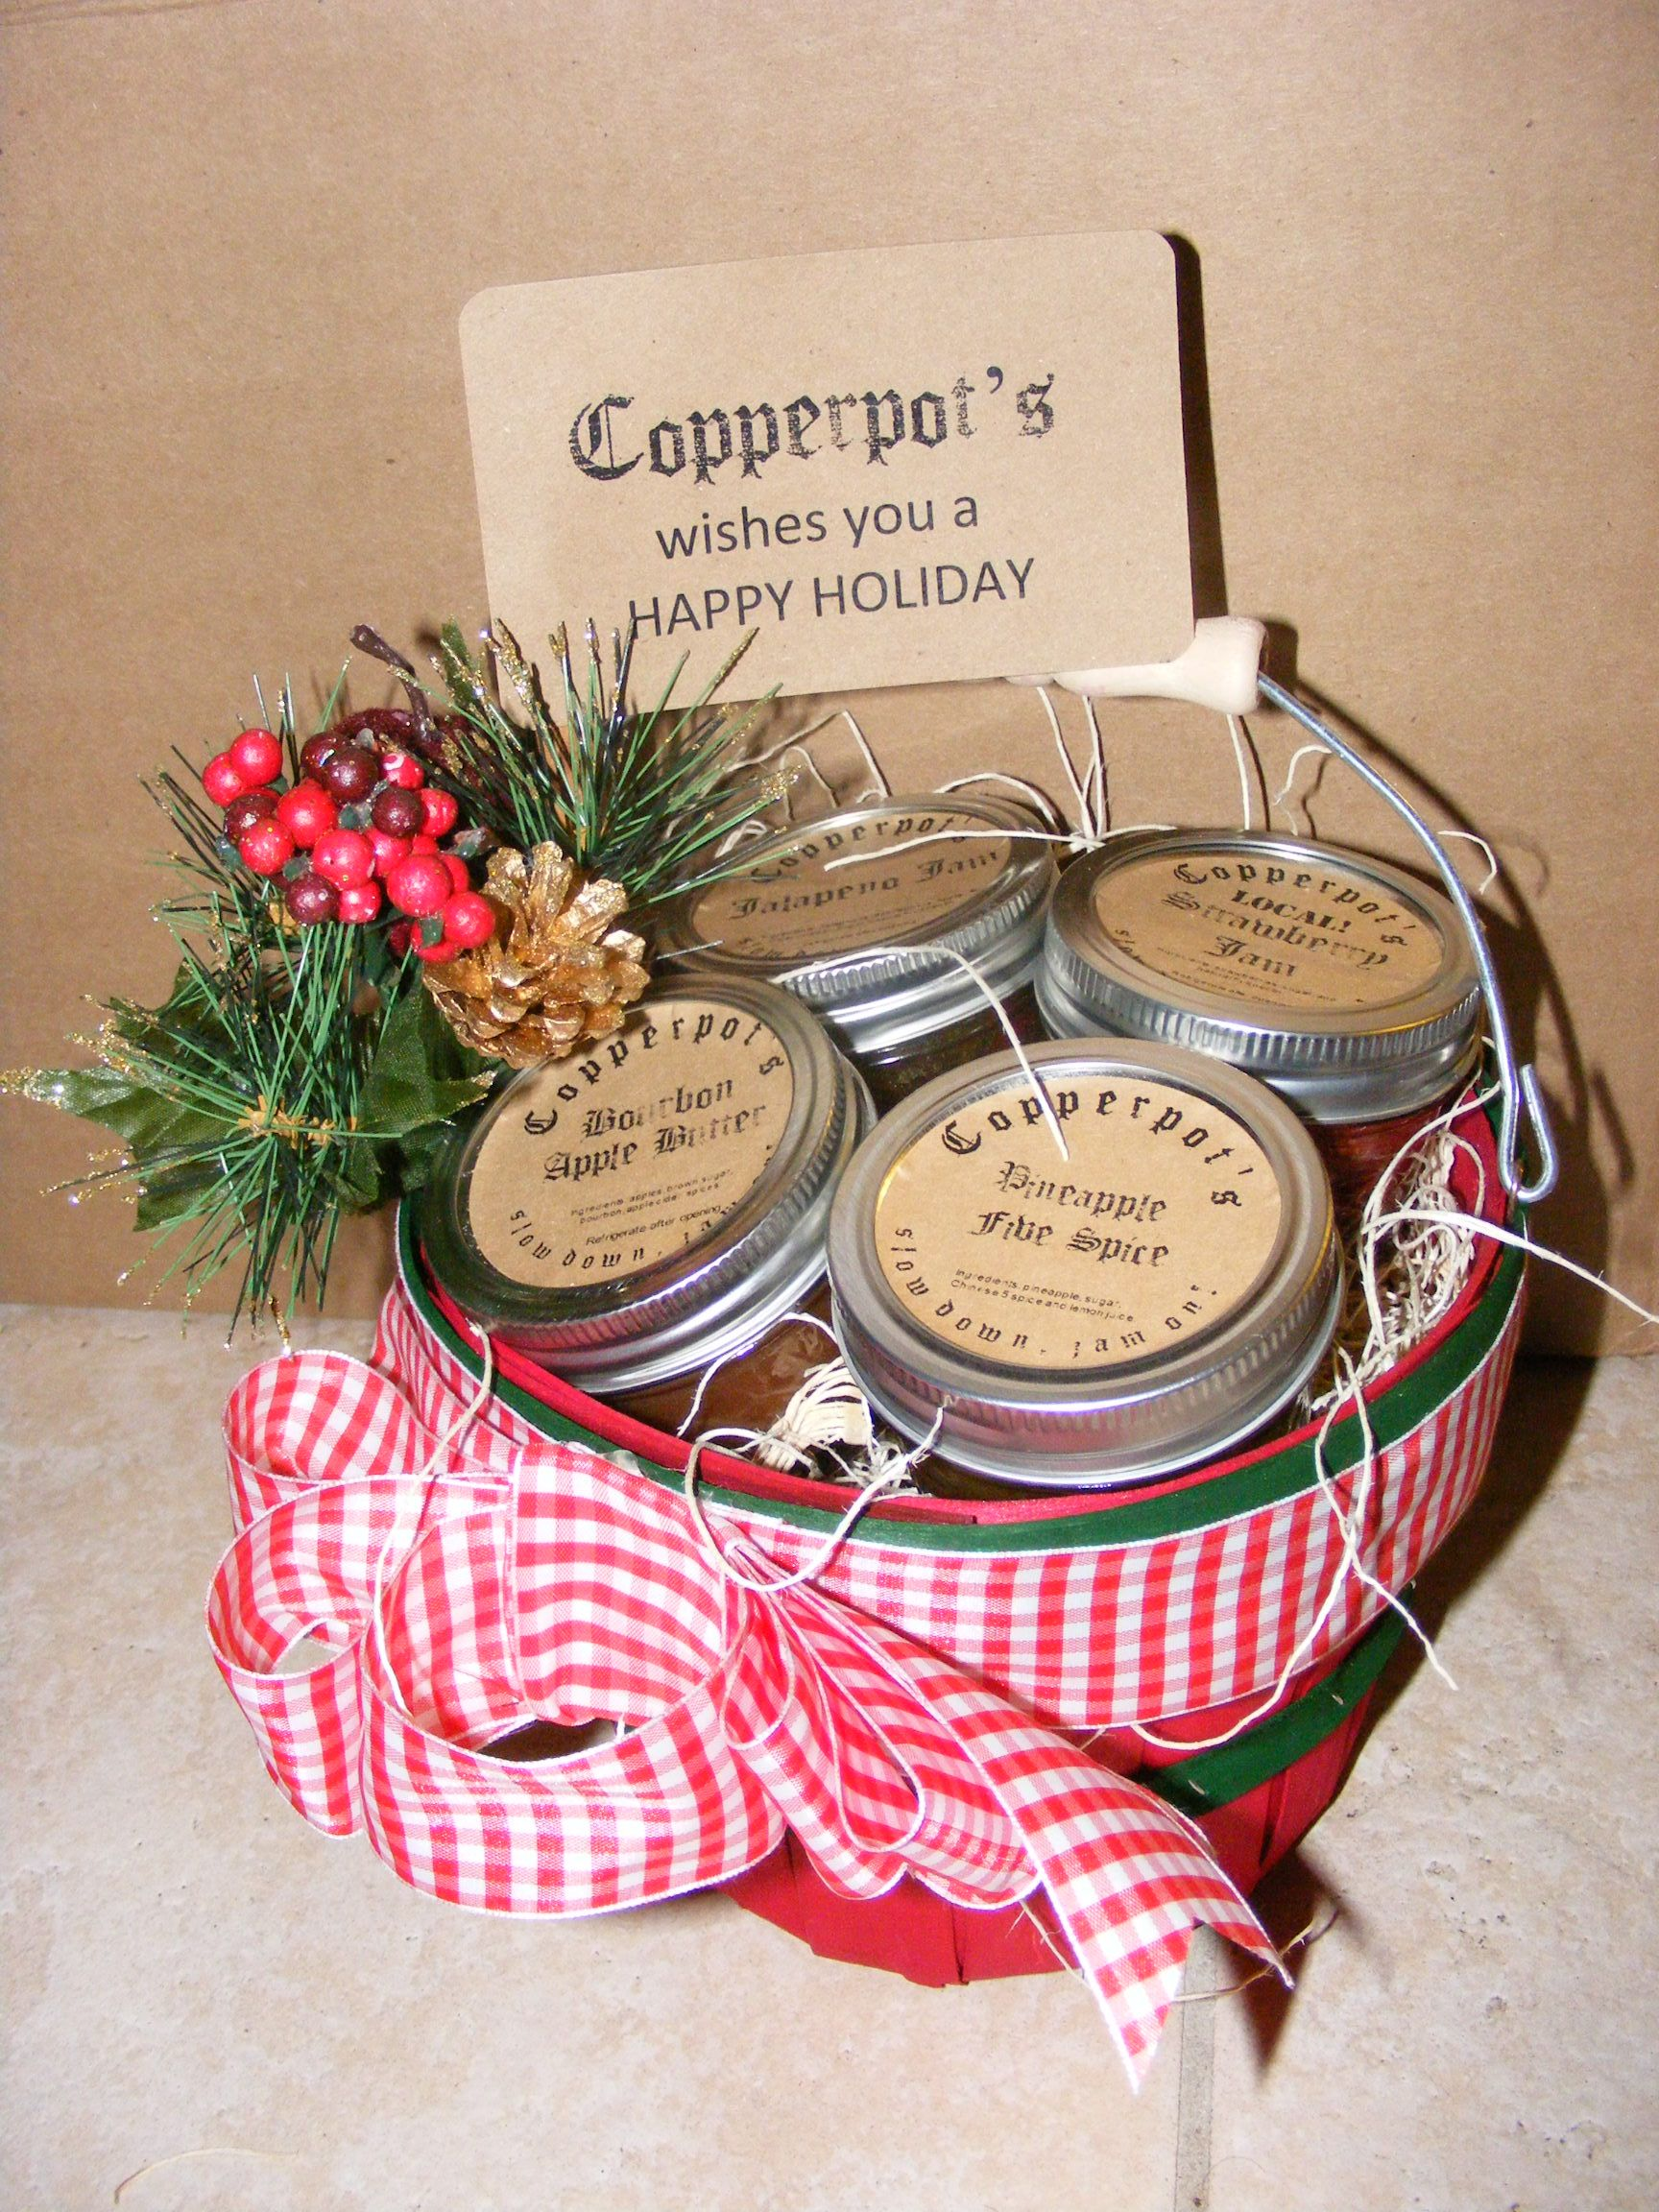 Copperpots homemade jam gift basket copperpots pinterest copperpots homemade jam gift basket negle Gallery